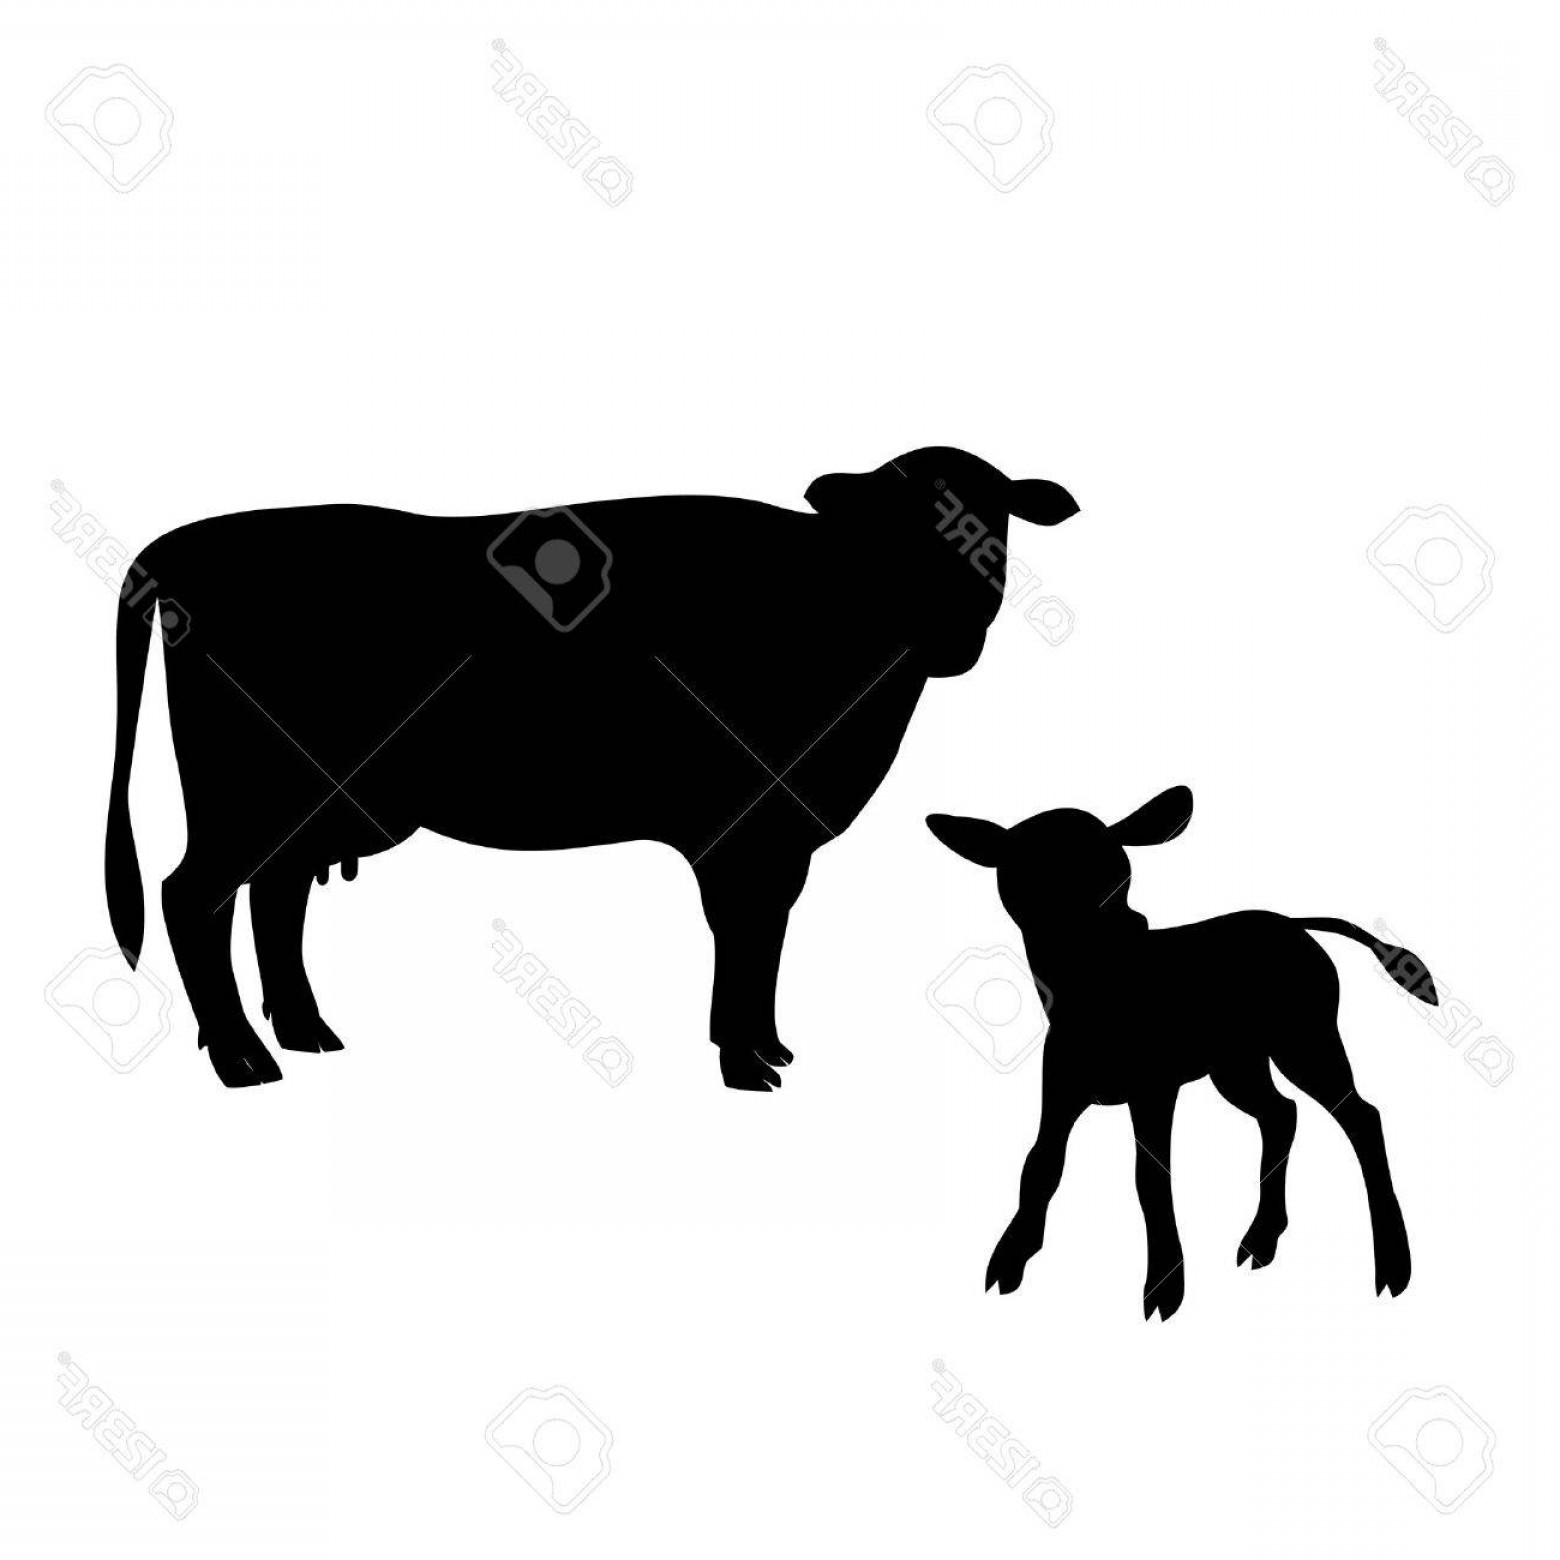 1560x1560 Calf And Cow Silhouette Vector Arenawp